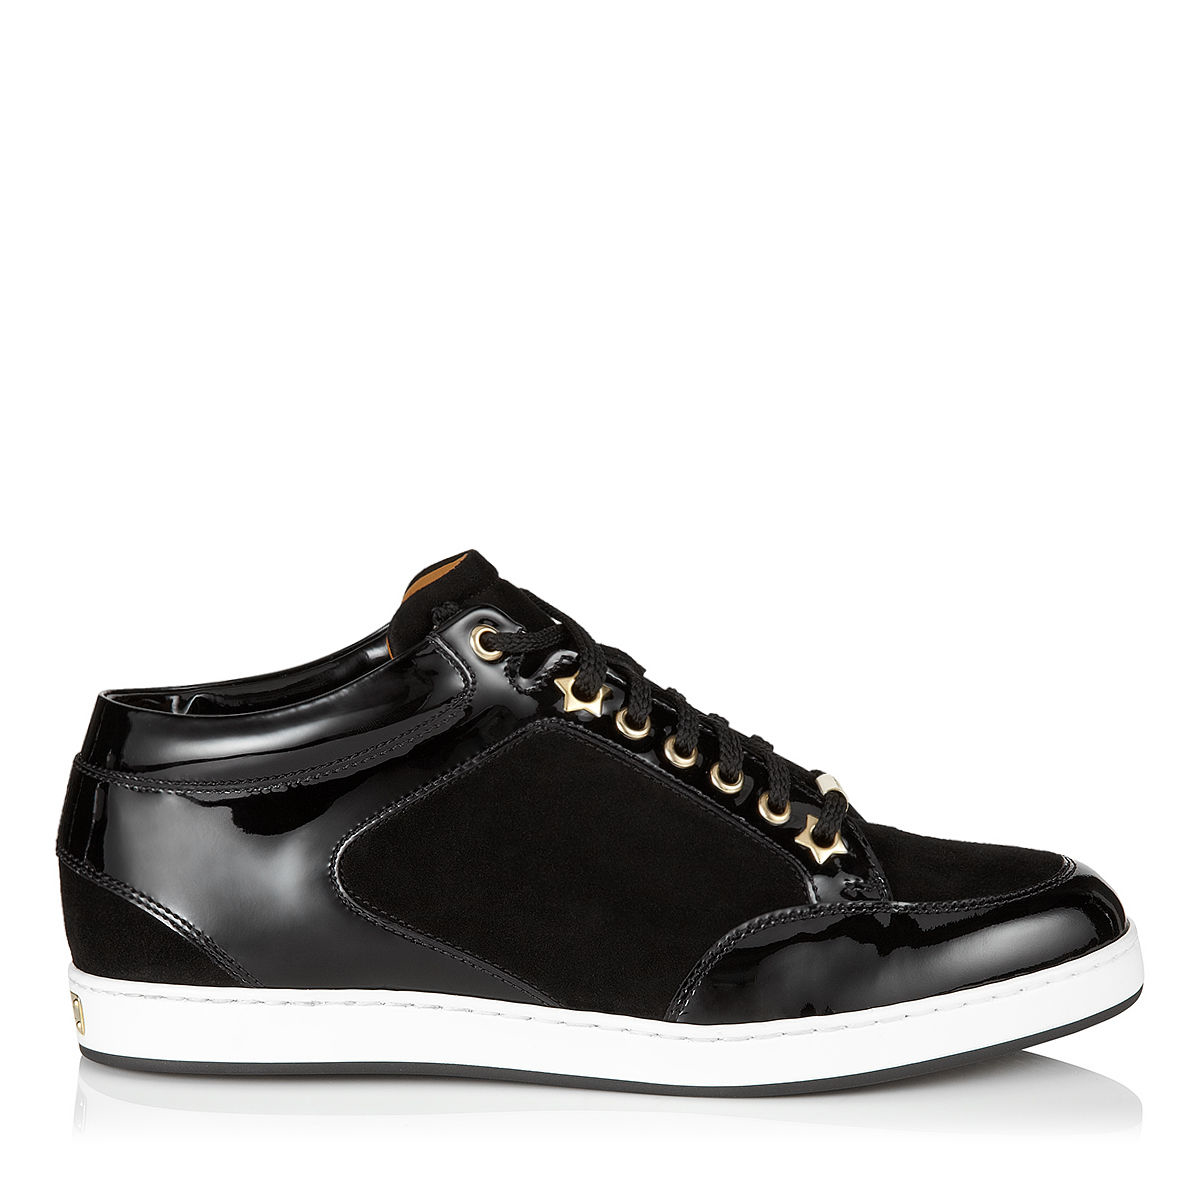 results for womens black patent trainers Save womens black patent trainers to get e-mail alerts and updates on your eBay Feed. Unfollow womens black patent trainers .